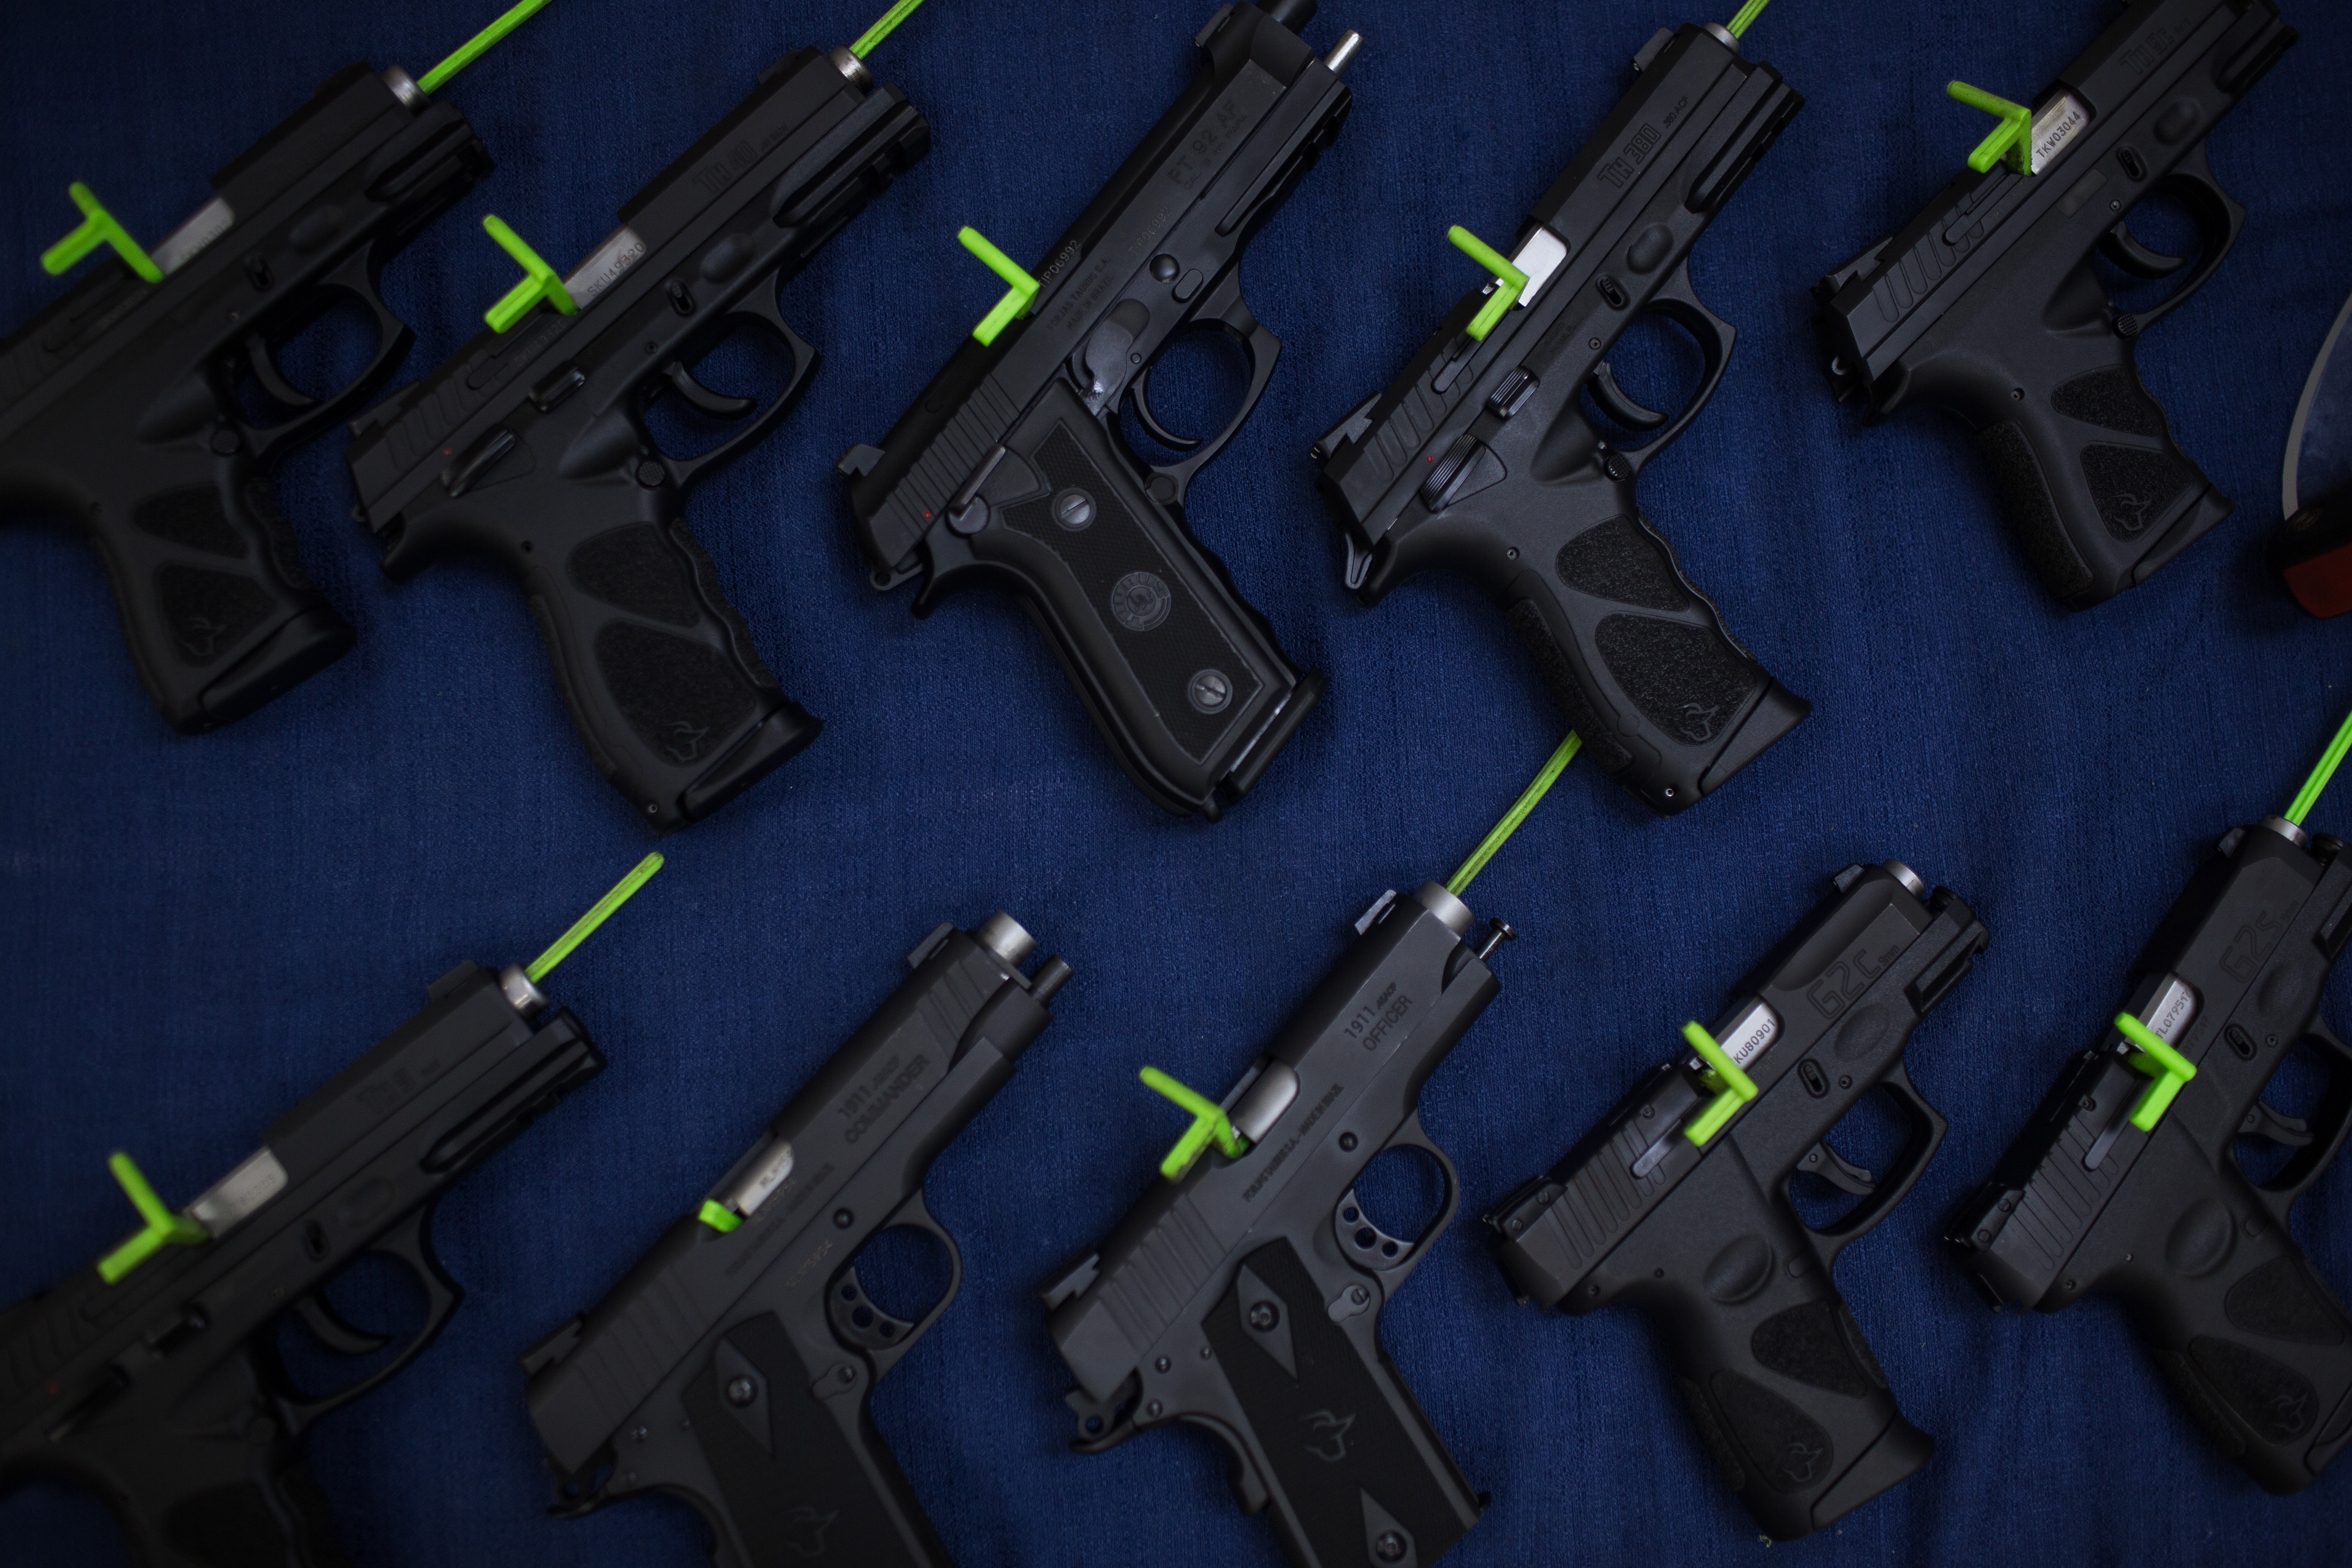 Handguns sit at the Forjas Taurus SA manufacturing facility in Sao Leopoldo, Brazil, on Tuesday, Feb. 5, 2019. Last month, Brazil's President Jair Bolsonaro signed a decree loosening the country's restrictive gun regulations, and hinted at further measures to arm law-abiding citizens to combat rampant crime. Photographer: Victor Moriyama/Bloomberg via Getty Images